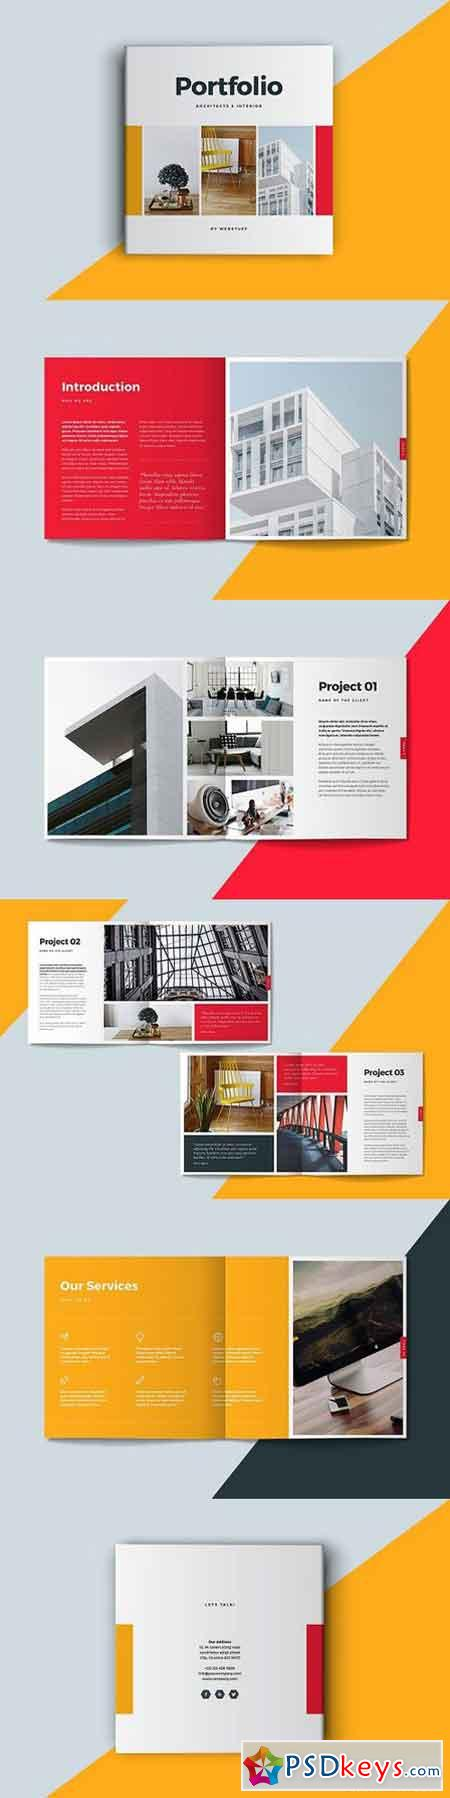 Square Portfolio Brochure Template 1341770